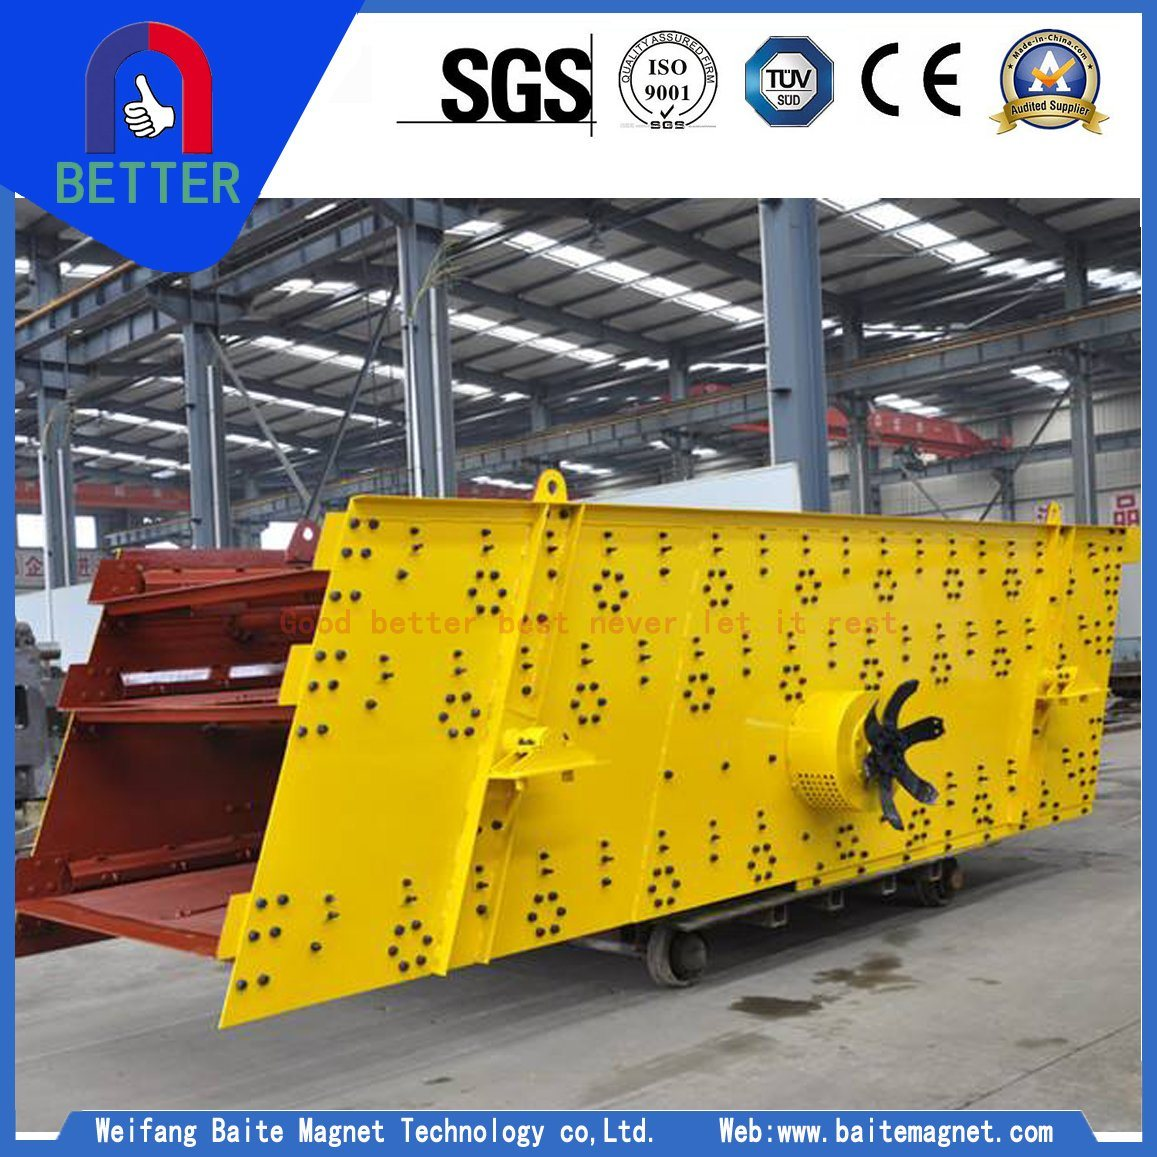 Yk Series Circular Vibrating Screen for Mining/Gold/Copper/Coal Mining/Crushing/Plant